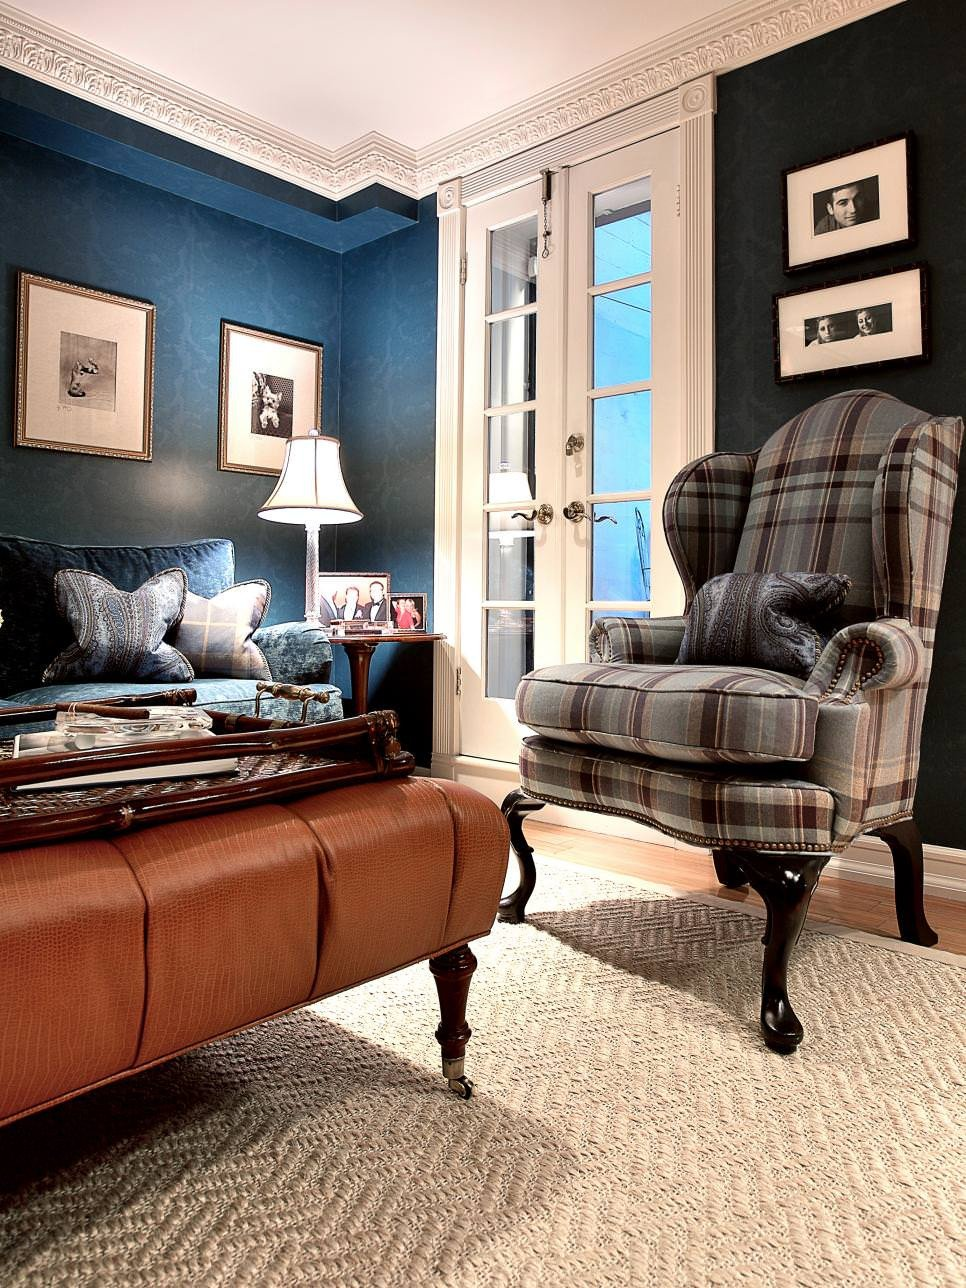 Brown Living Room Decorating Ideas Fresh 20 Blue and Brown Living Room Designs Decorating Ideas